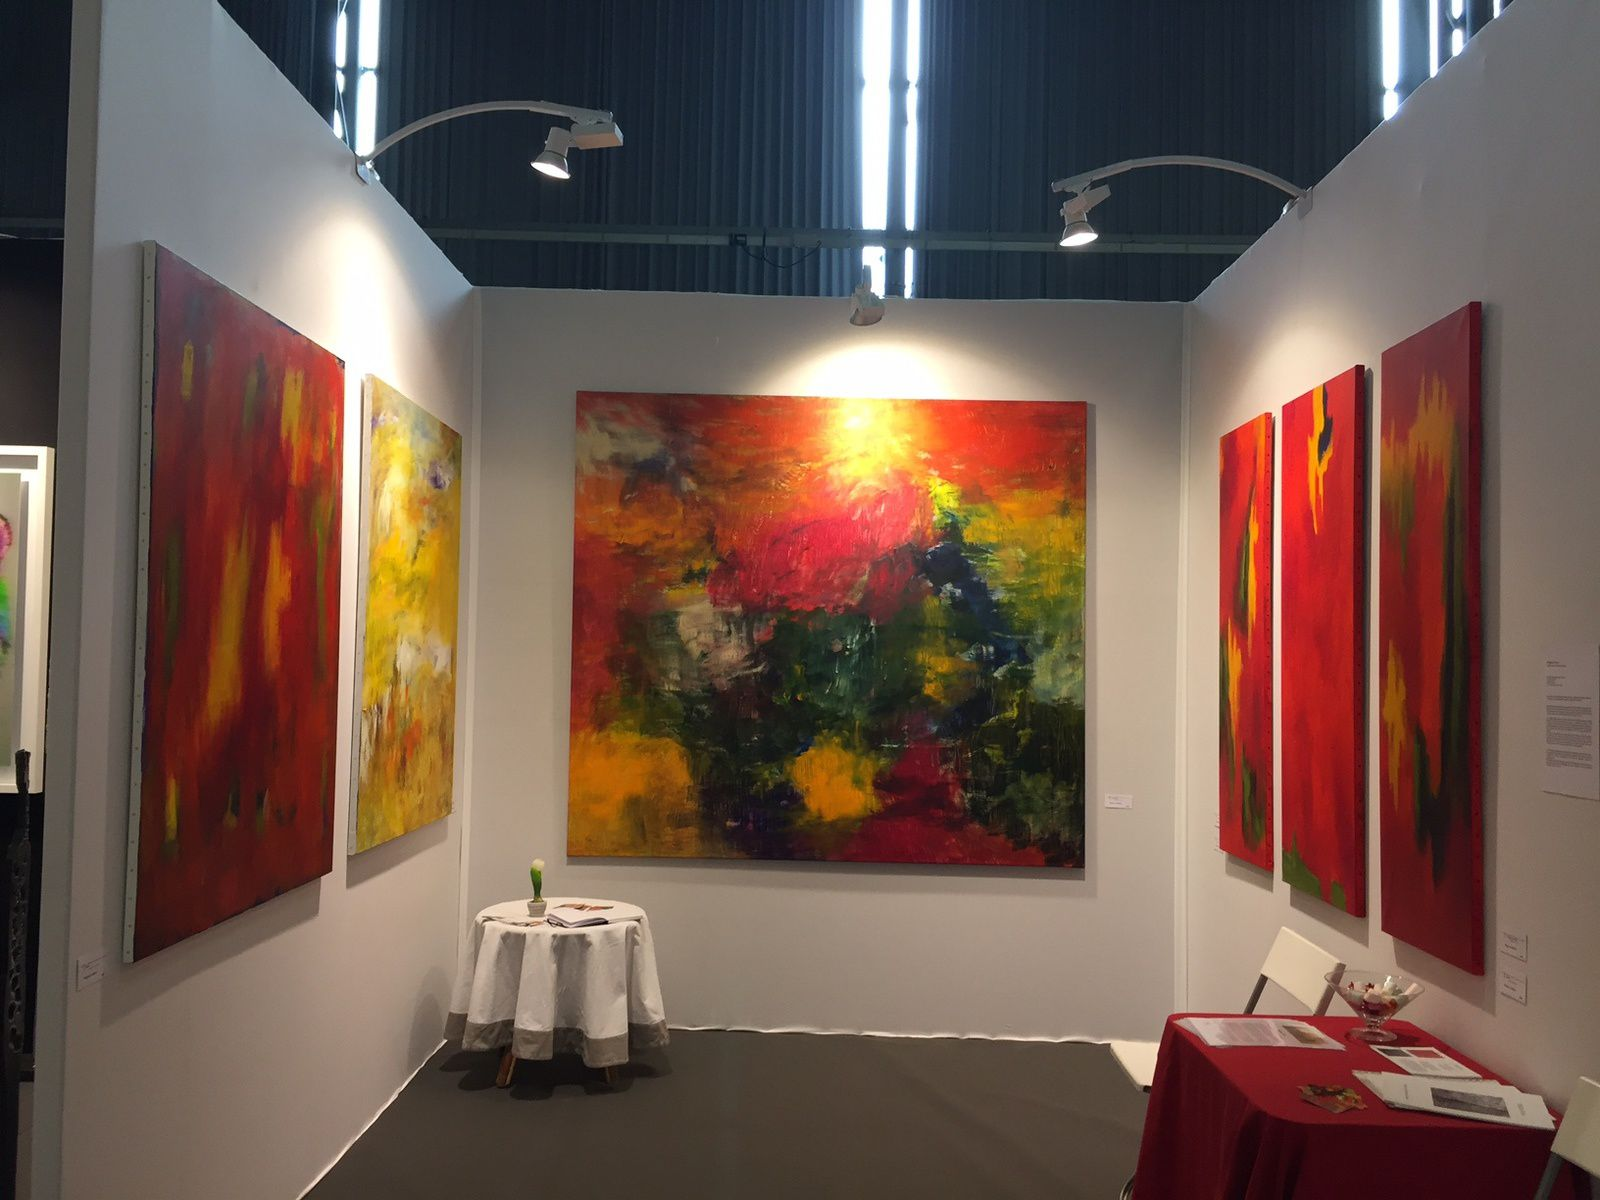 Exposition de Brigitte Garcia au Salon d'Art Contemporain Art3f Nantes 2017